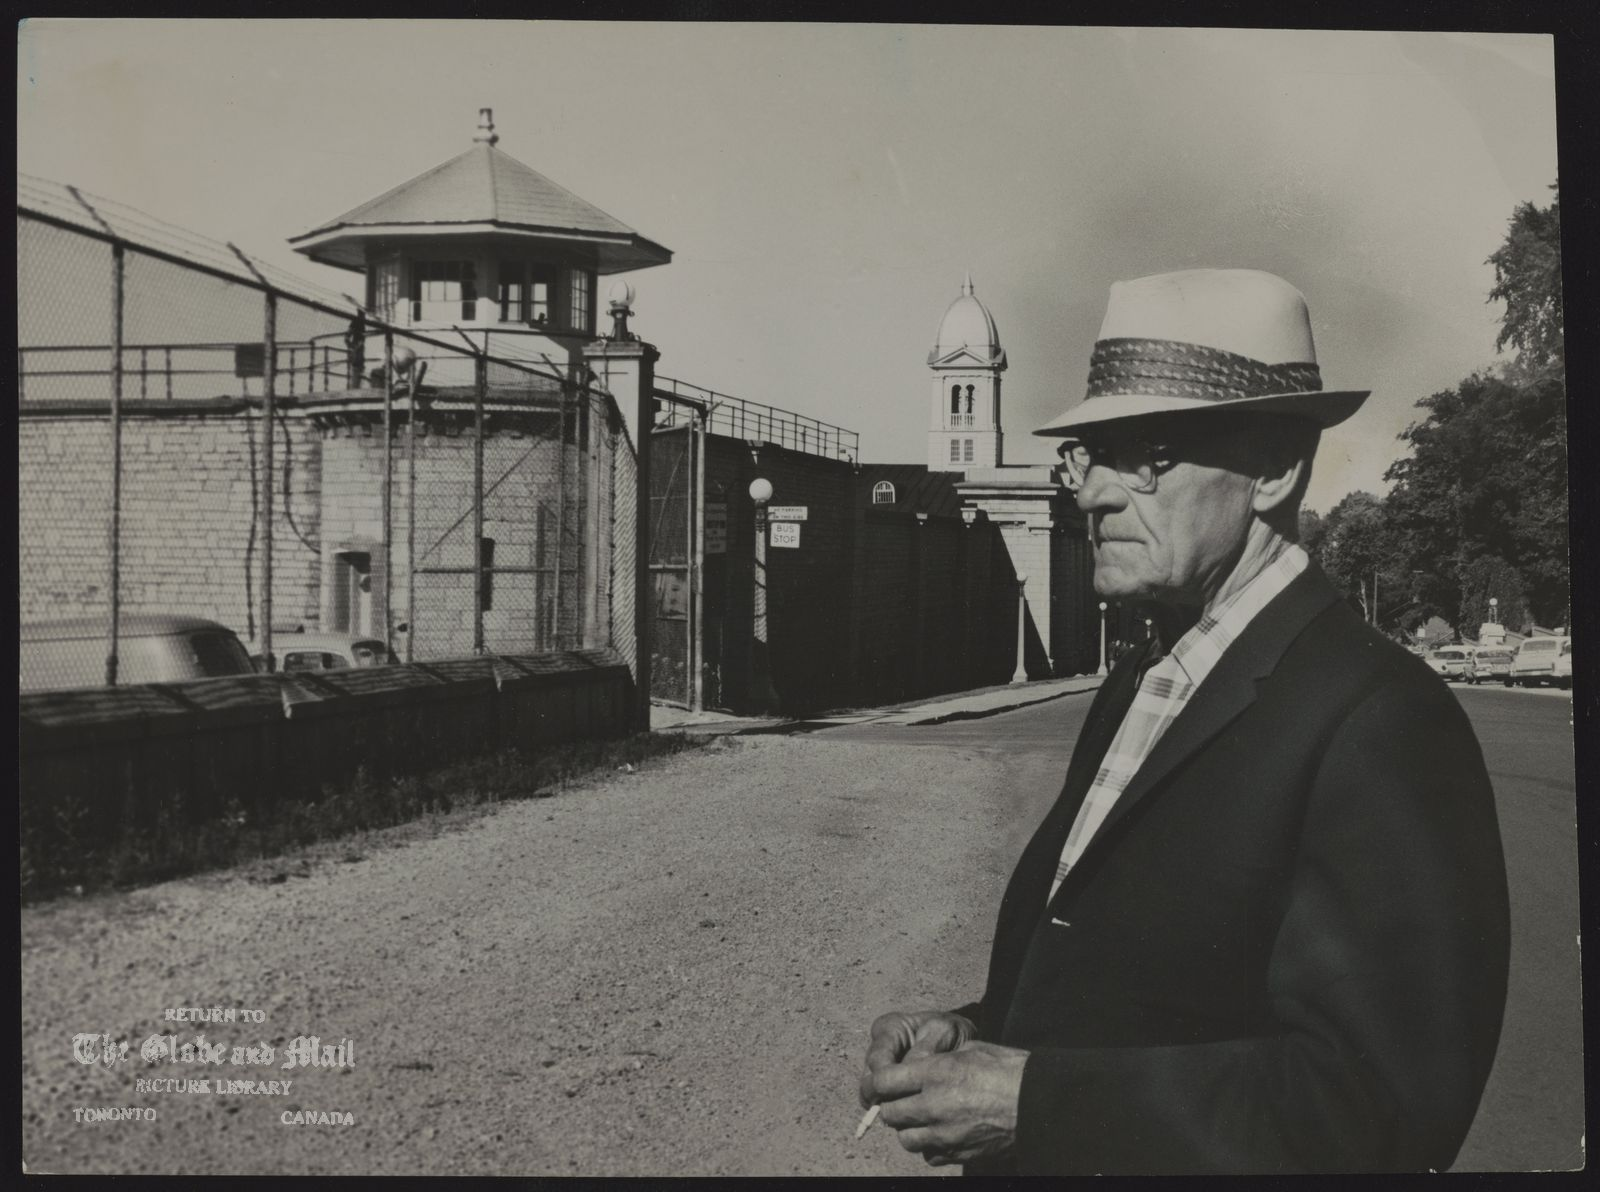 KINGSTON PENITENTIARY William Nicholson, father of one of the five penitentiary officers held hostage in Kingston Penitentiary kitchen for 28 hours, stands outside, the prison in which he spent 28 years as a guard. Another son, John, has been a guard at nearby Collins Bay Penitentiary for about 20 years.